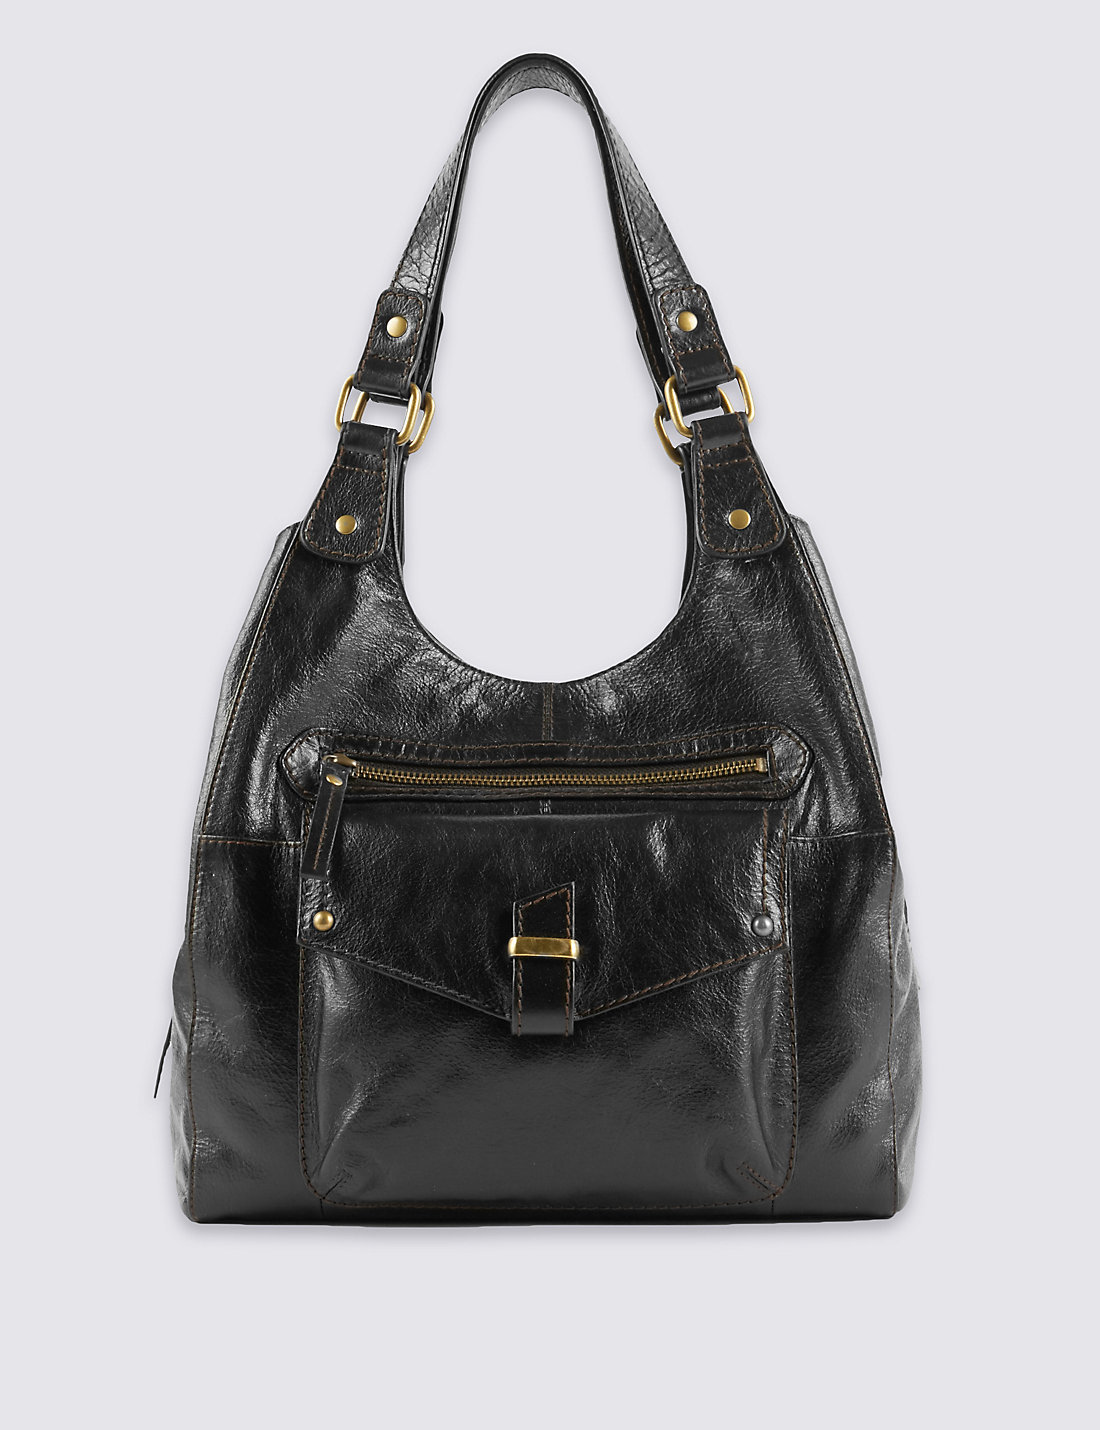 celine replica bags - Leather Handbags | Leather Tote & Shopper Bags For Women | M&S